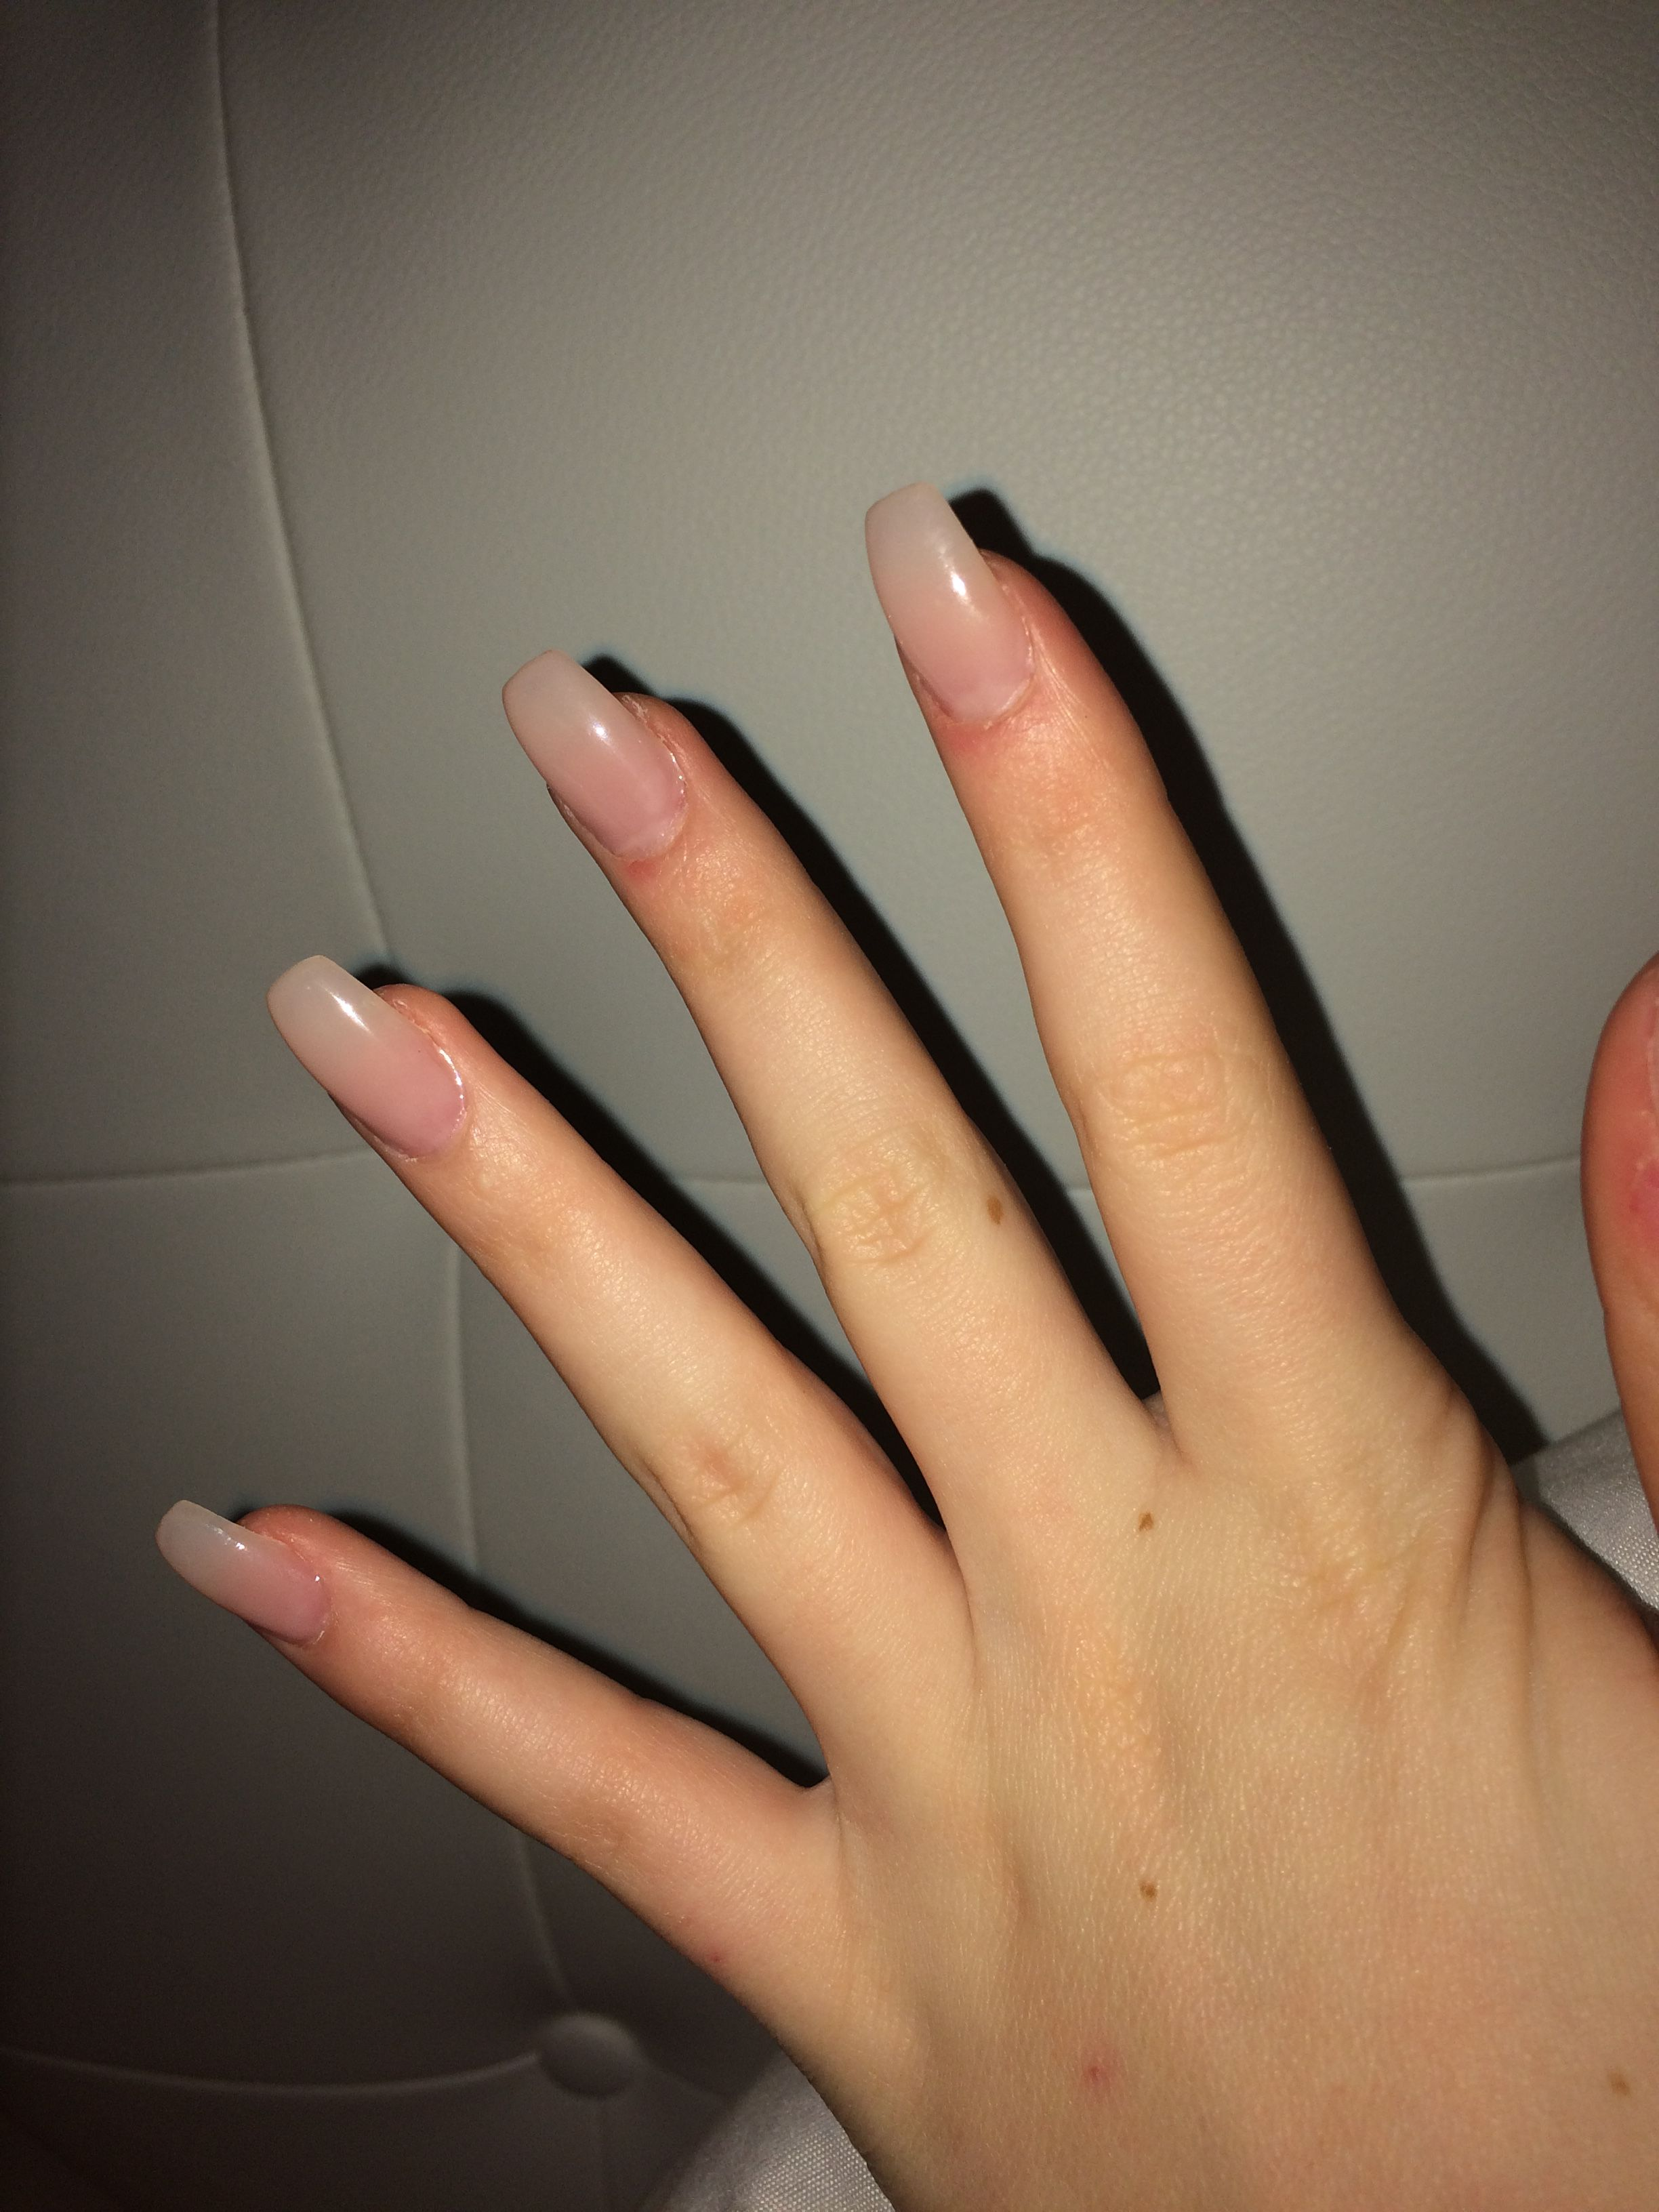 Opi Put It In Neutral Acrylic Nails Coffin Shape Neutral Nails Acrylic Acrylic Nails Coffin Coffin Nails